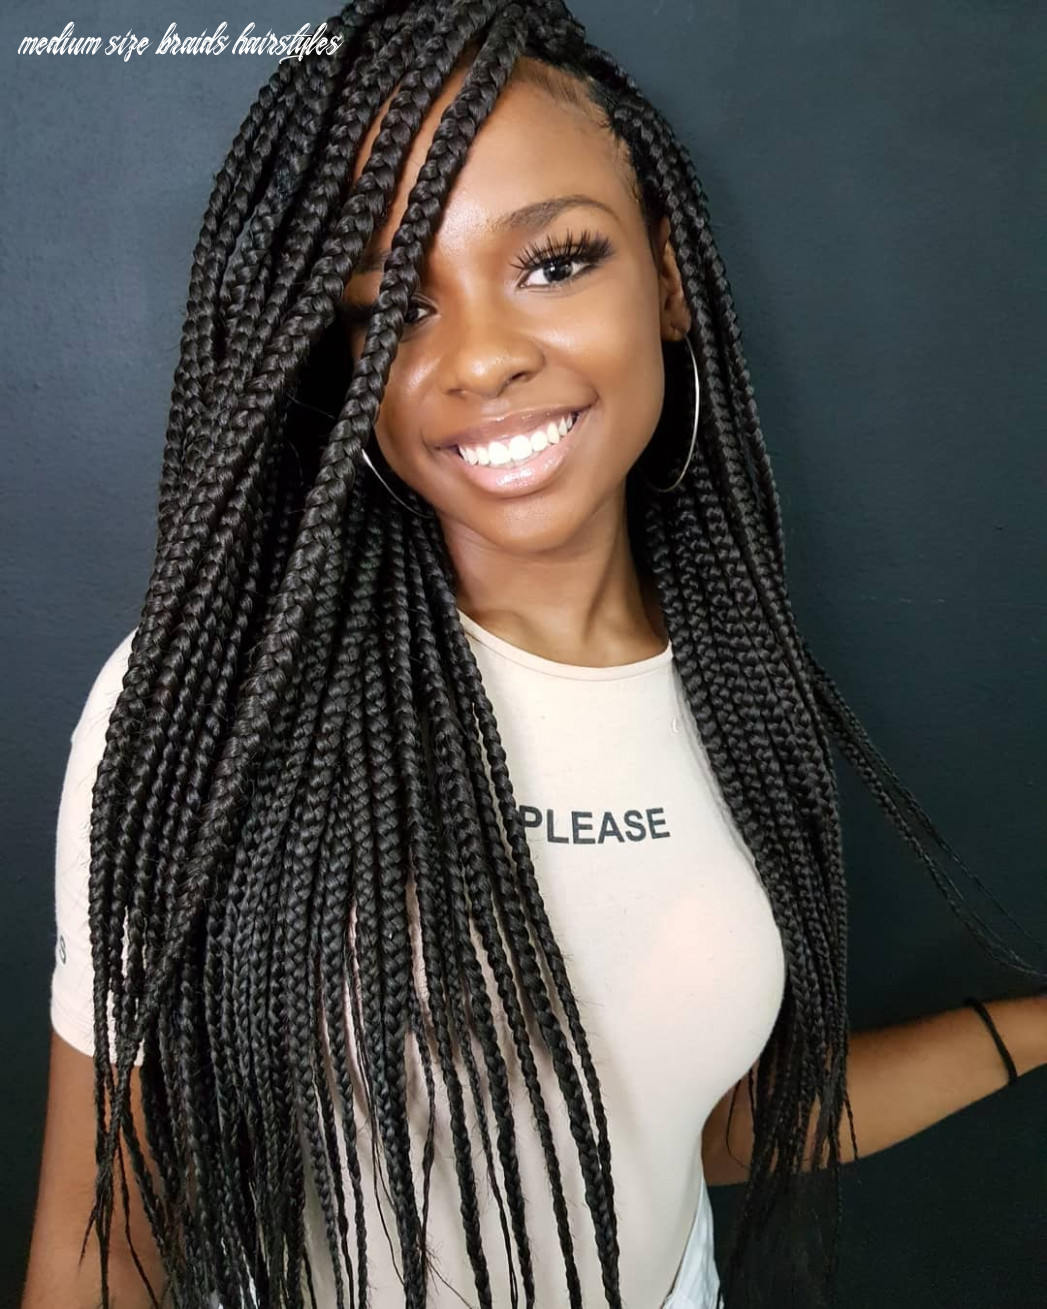 11 trendy box braids styles stylists recommend for 11 hair adviser medium size braids hairstyles